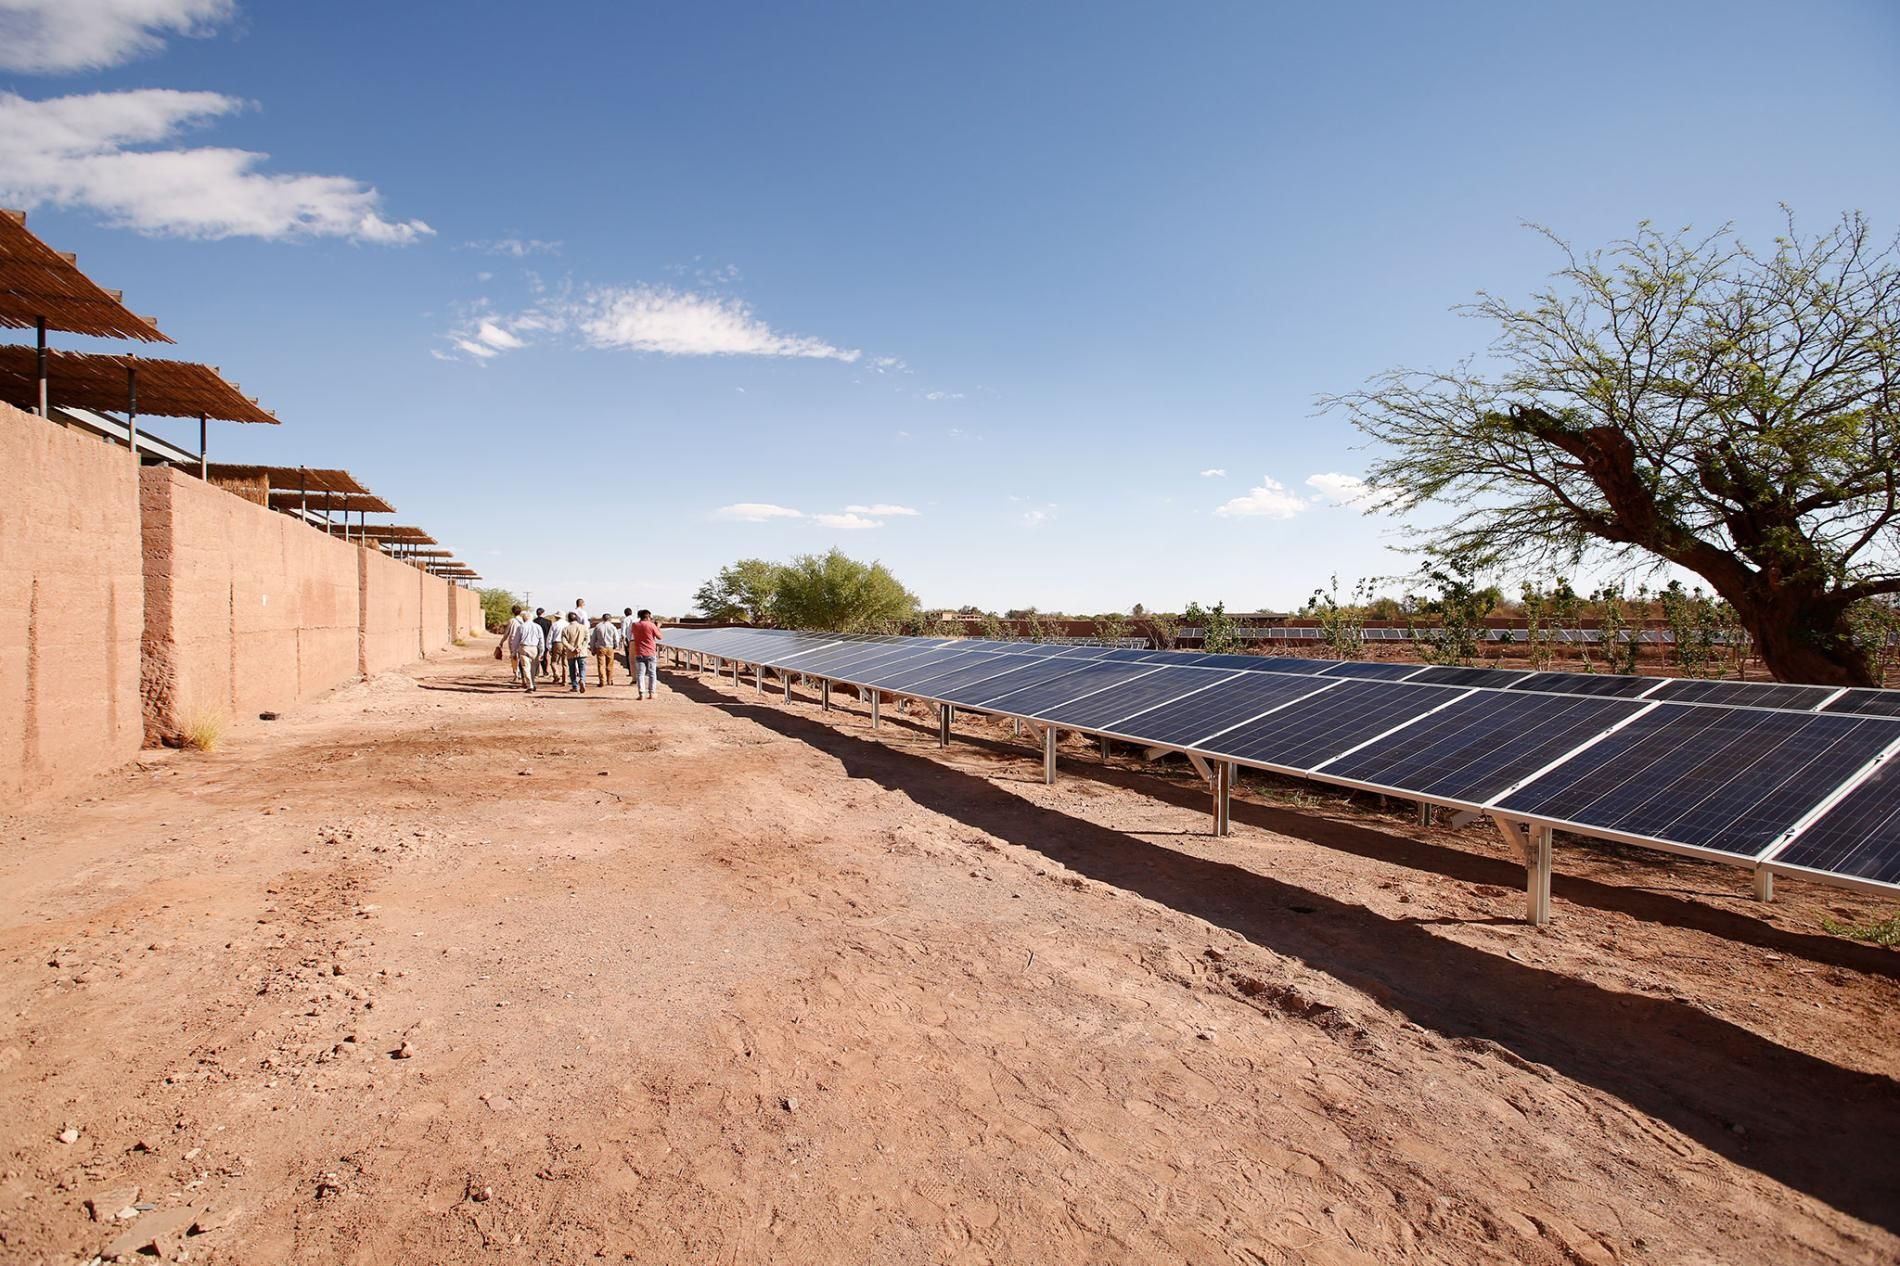 This Hotel Hopes To Serve As An Example In The Movement To Reinvent Chileone Solar Panel At A Time Https T C Renewable Solar Solar Energy Diy Energy Pictures